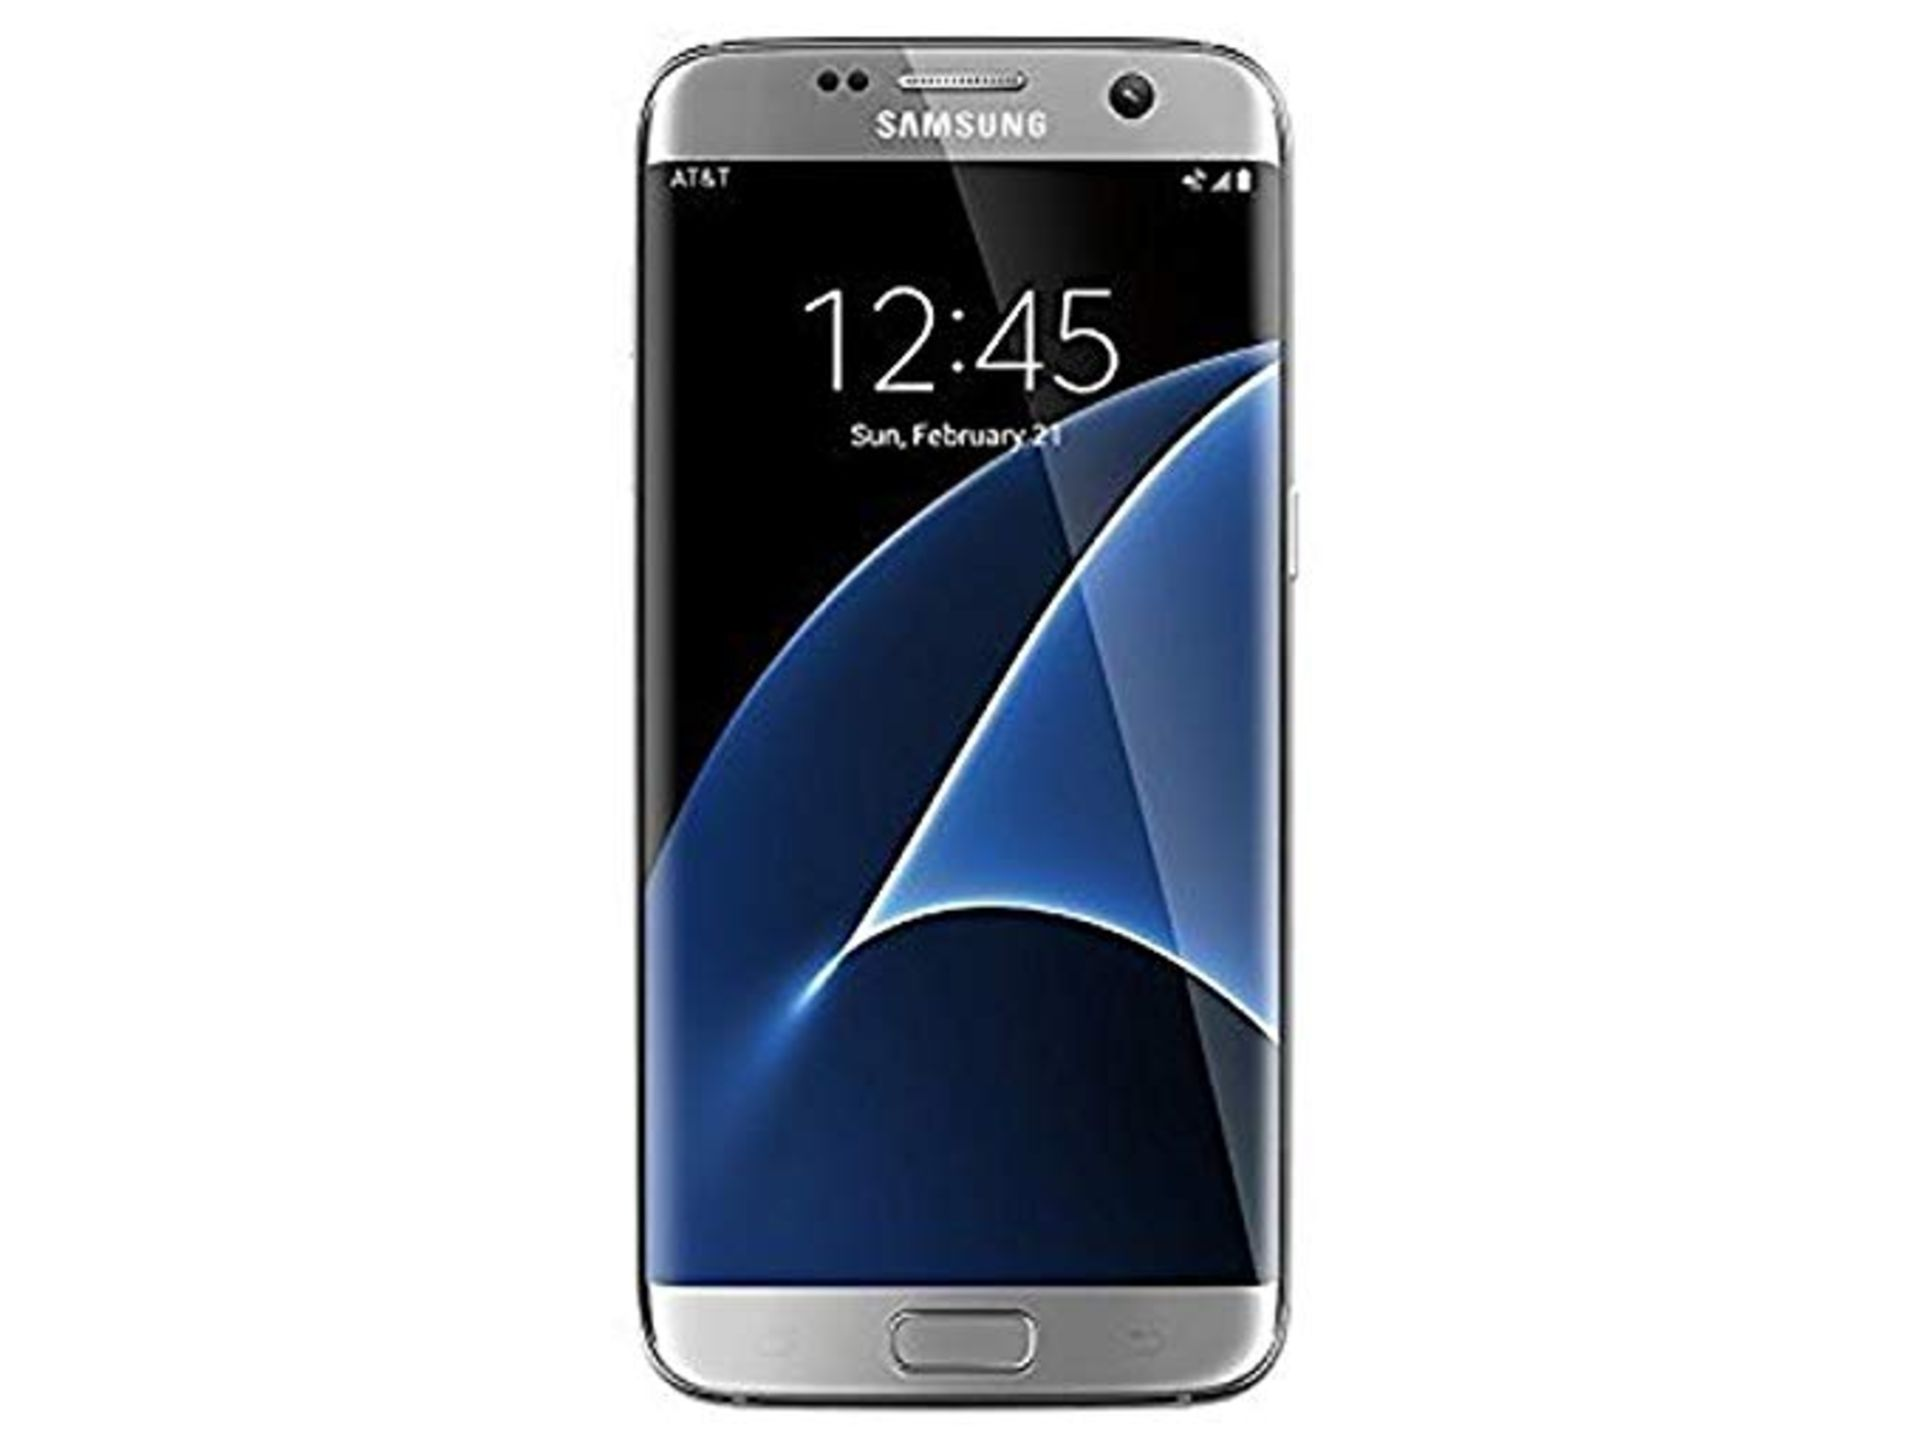 No VAT Grade A Samsung Galaxy S7 Edge (G935A/T/V/P) Colours May Vary - Item Available Approx 15